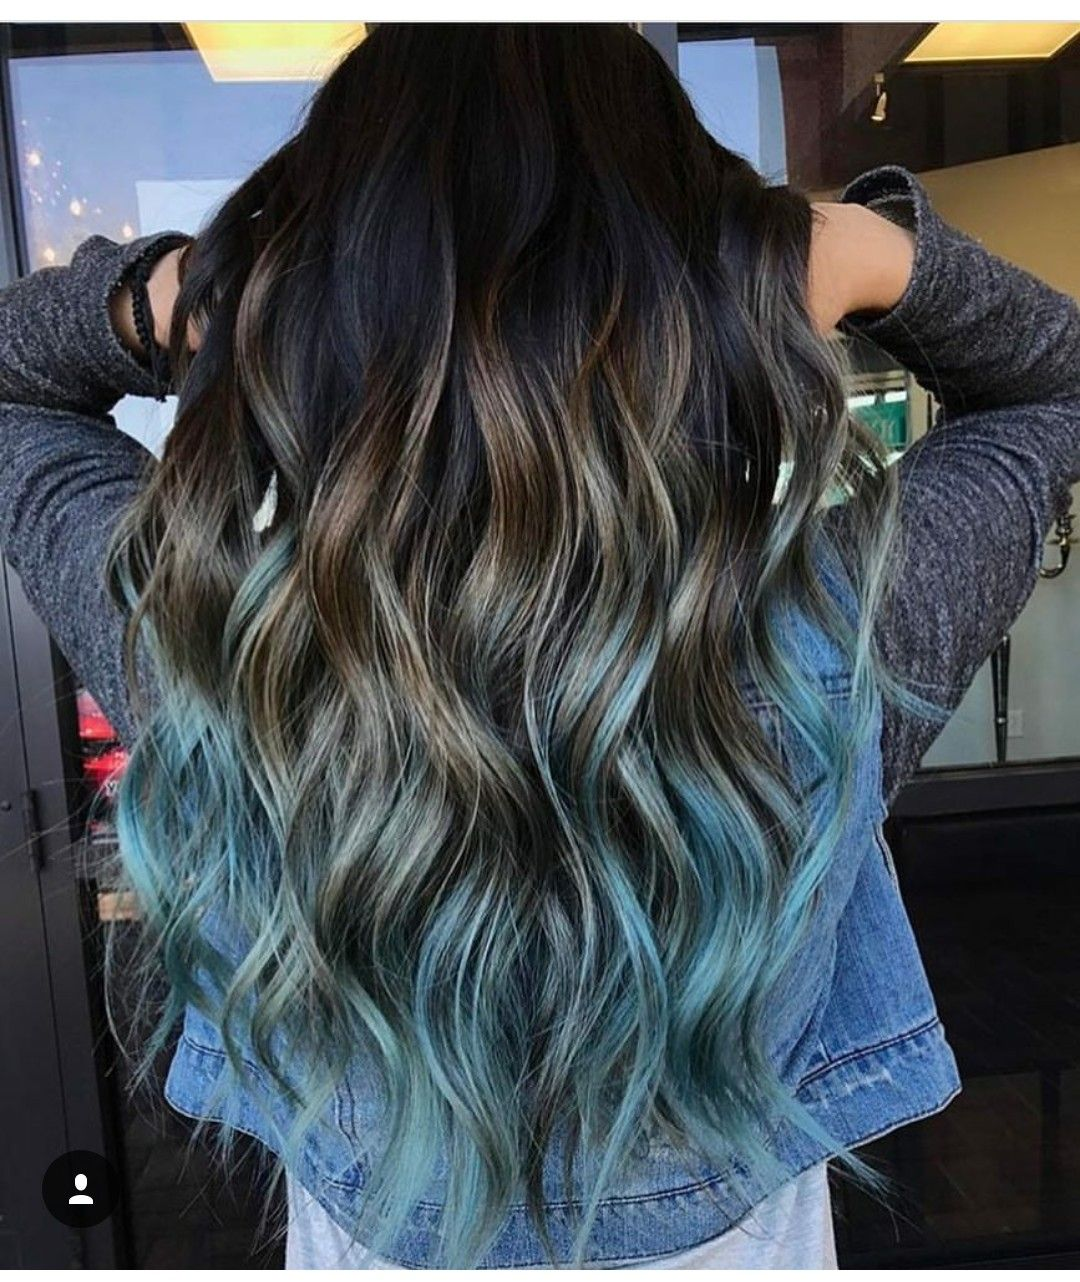 This Is Bad A Blue Ombre Hair Hair Styles Hair Color Blue